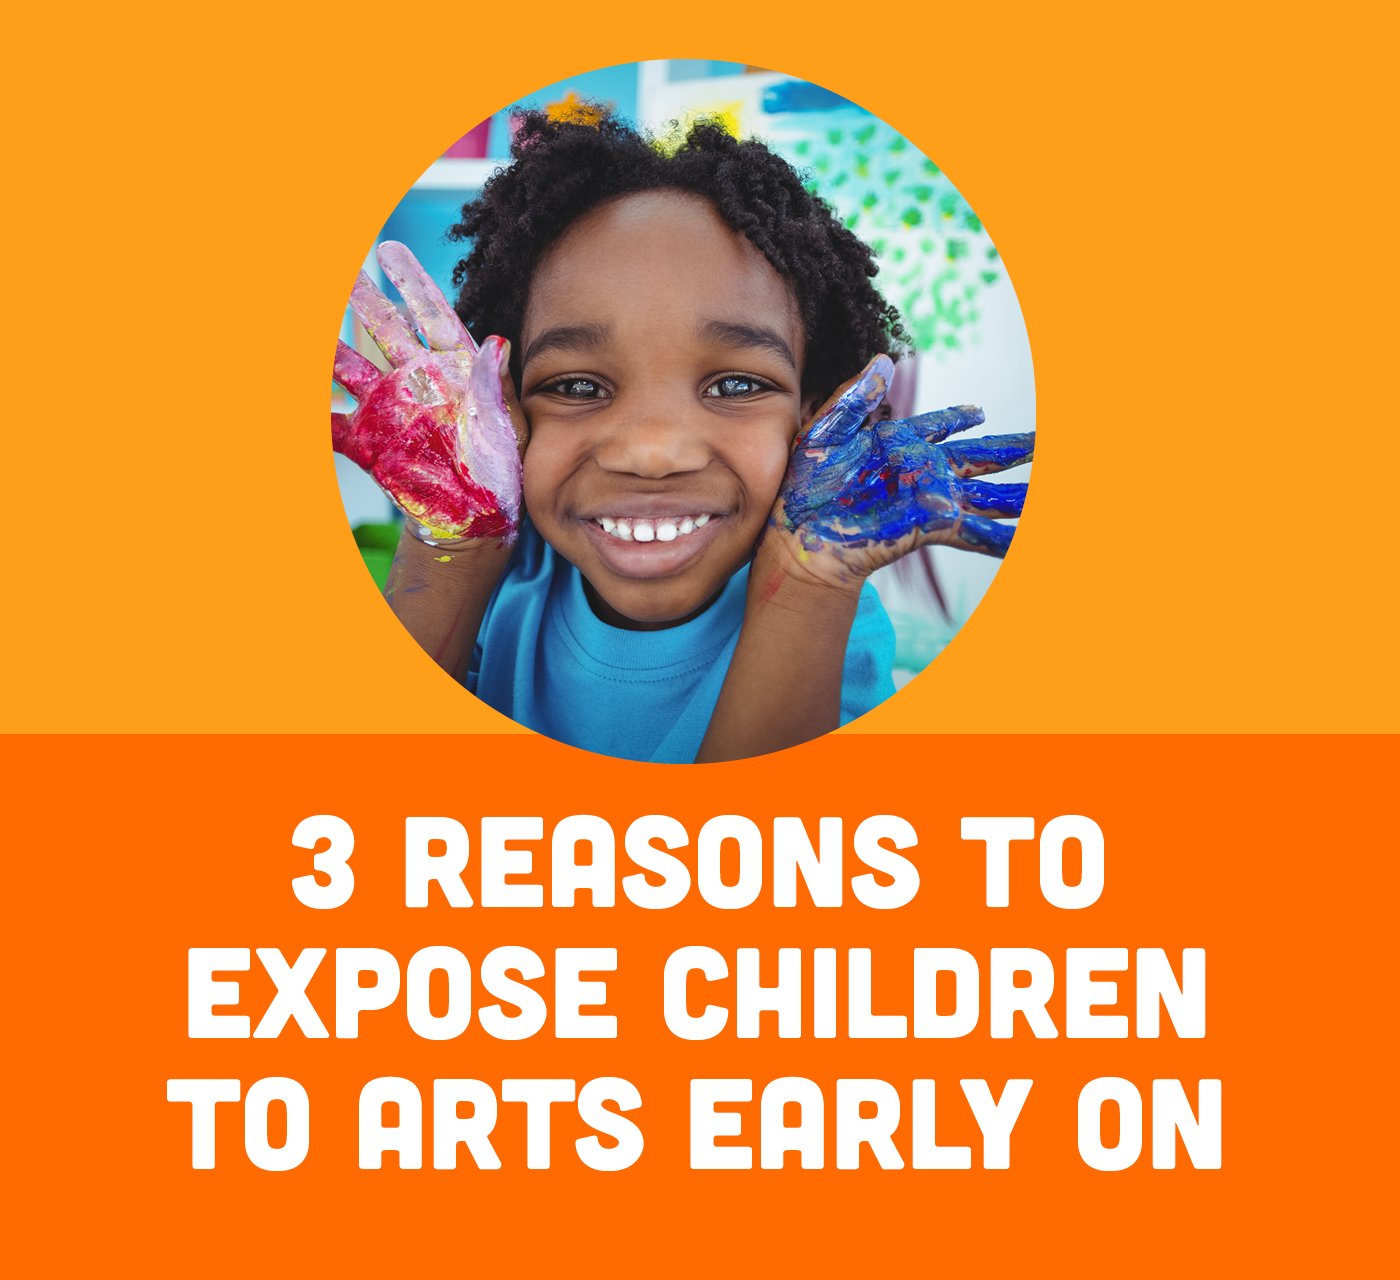 3 Reasons to Expose Children to the Arts Early On